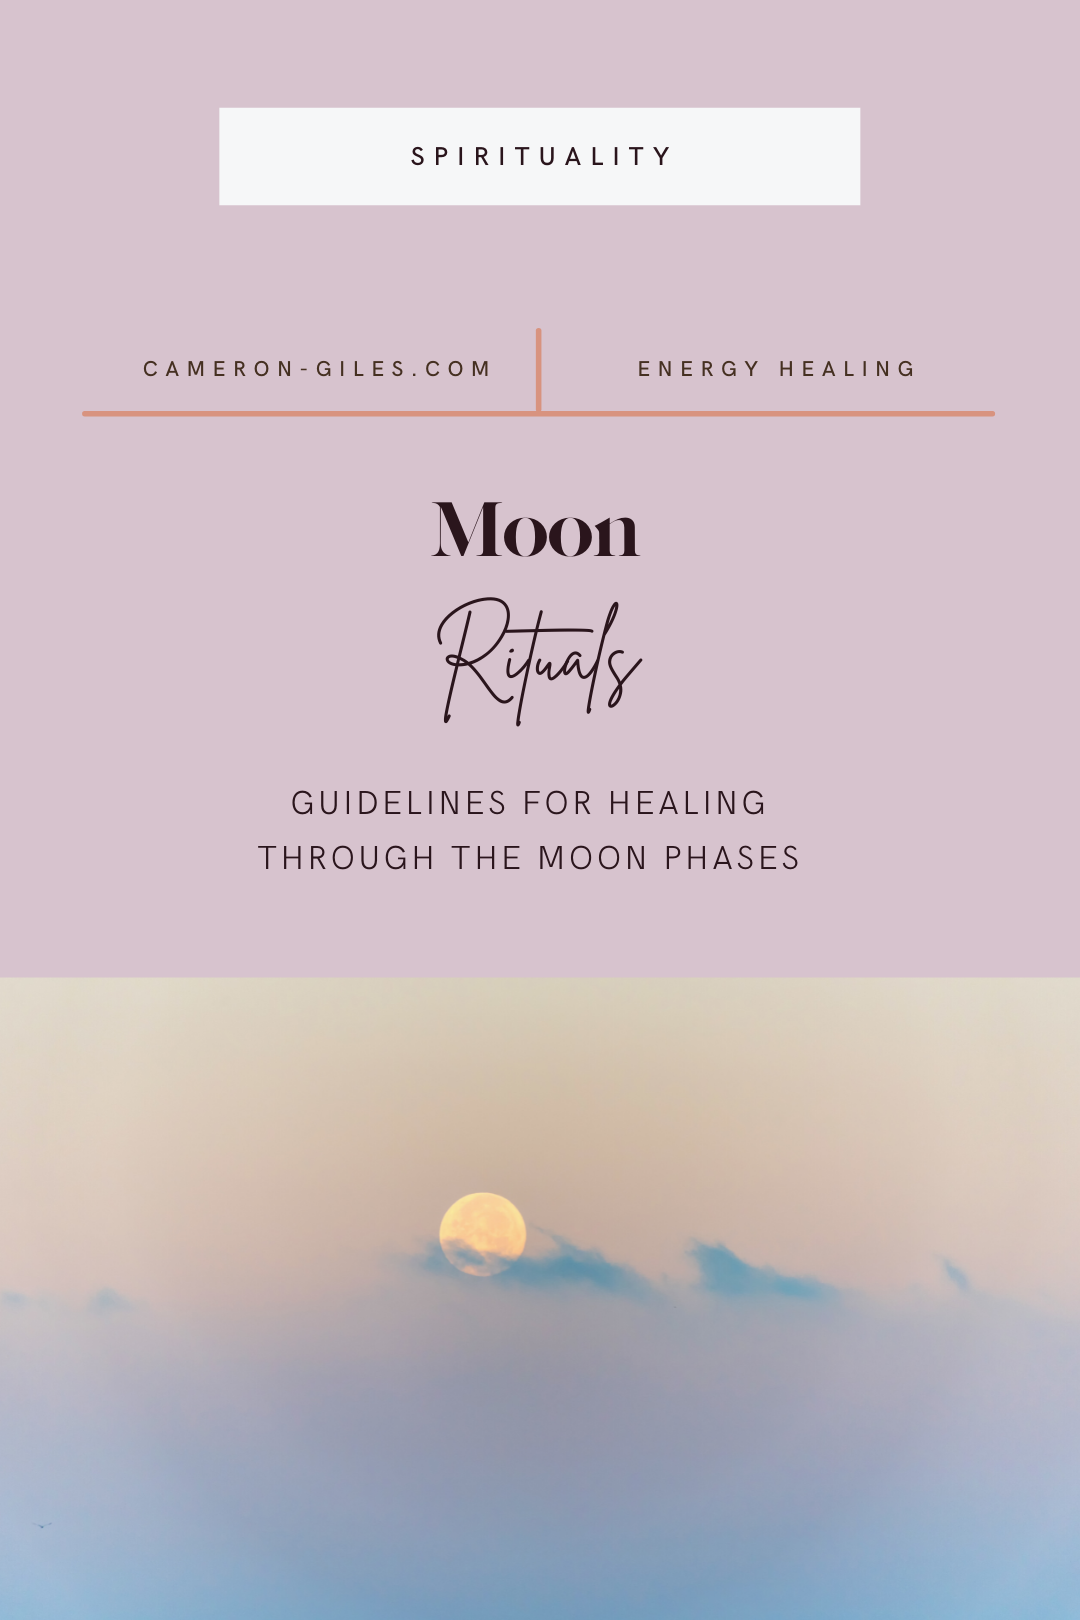 Moon Rituals: Guidelines for healing through the moon phases